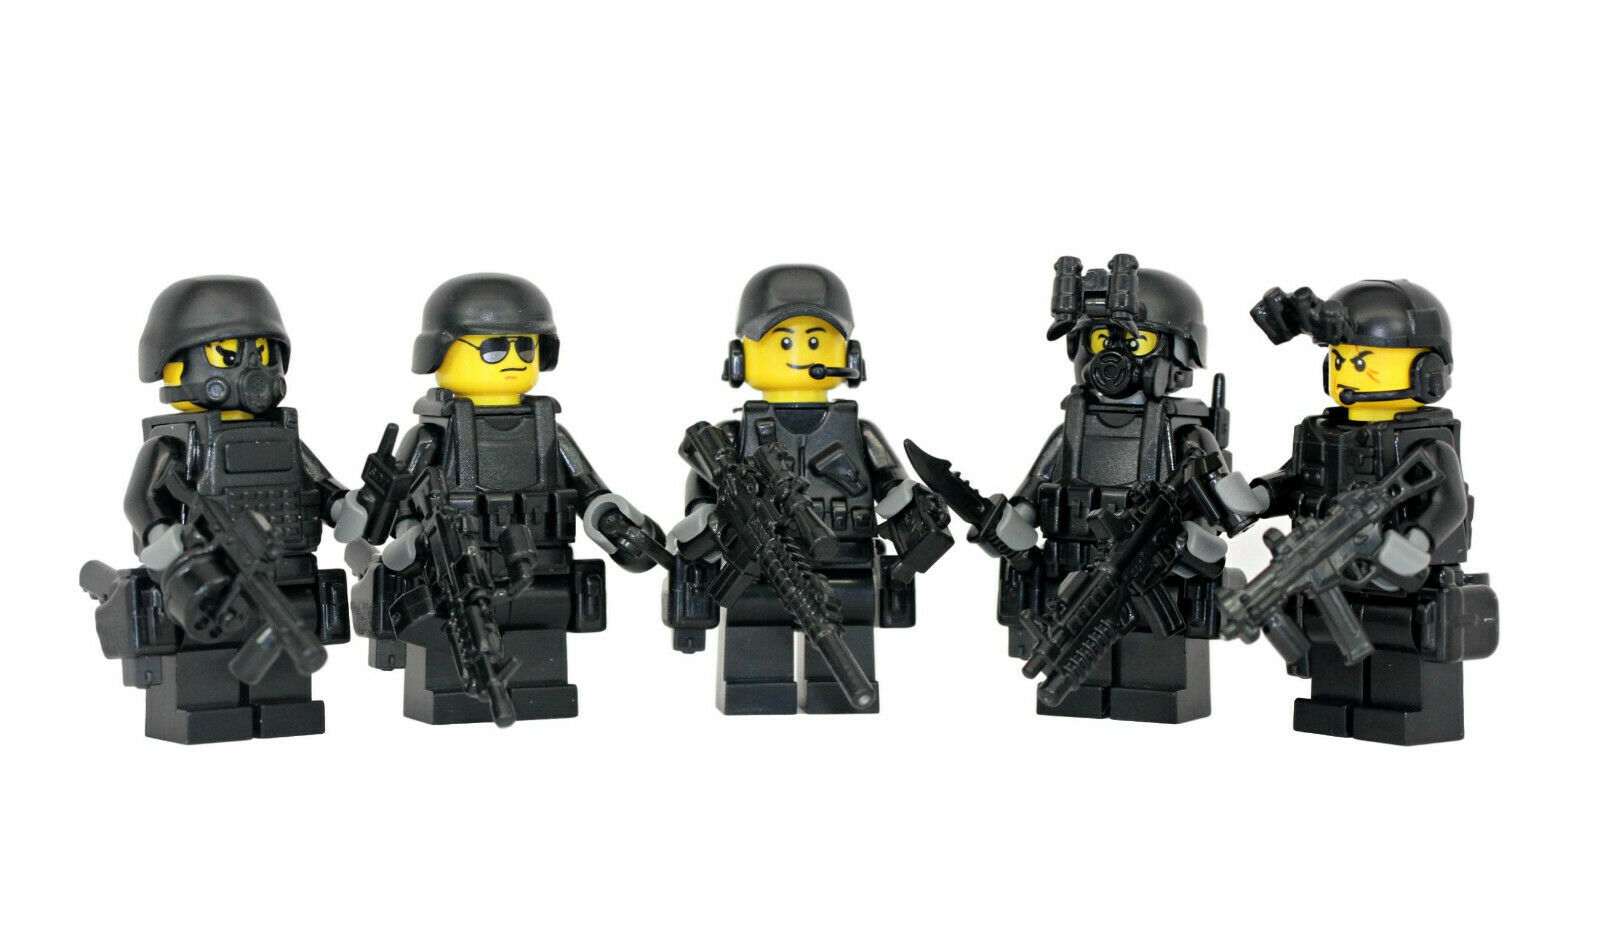 specialeeee Forces 5 uomo Squad  Military fatto with real LEGO(R) minicifra parts  100% autentico